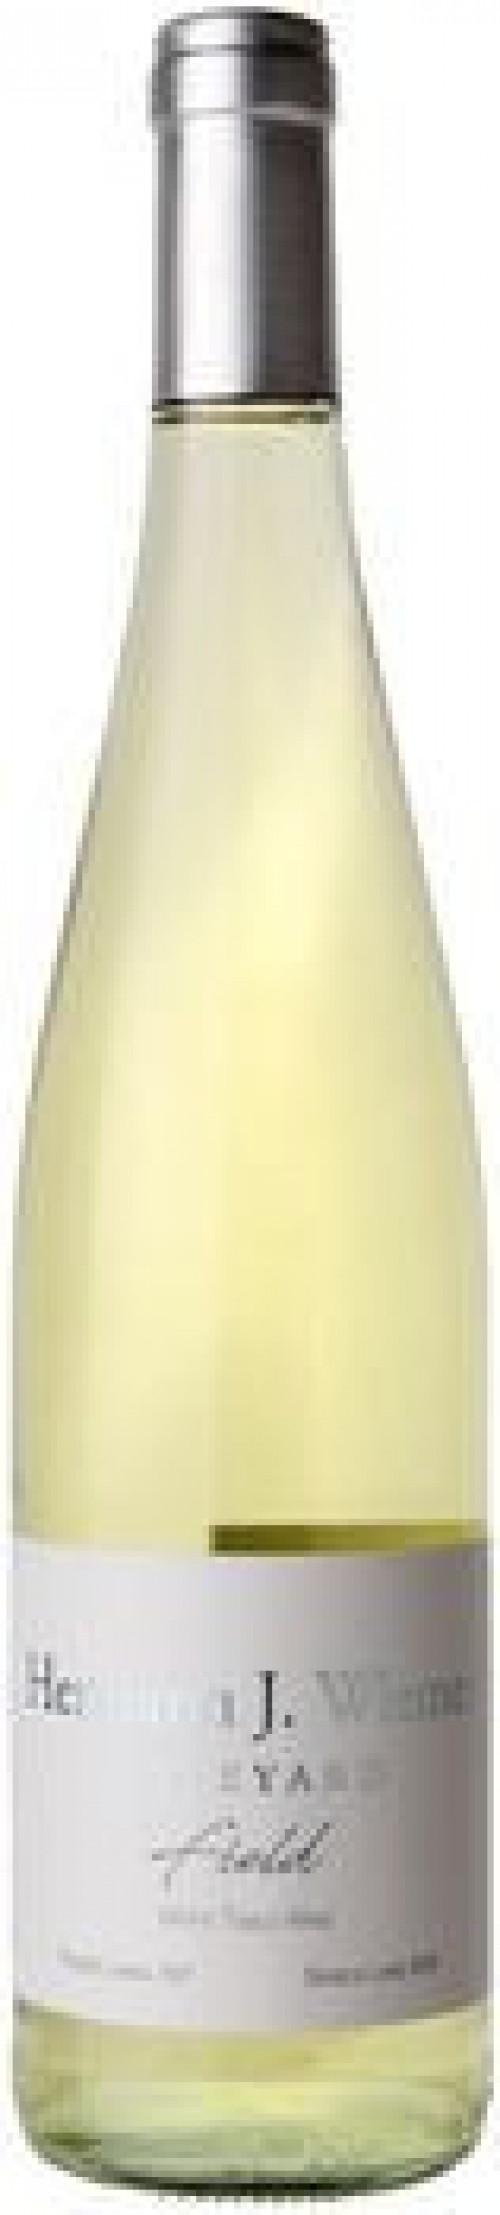 Hermann J Wiemer Field White 750ml